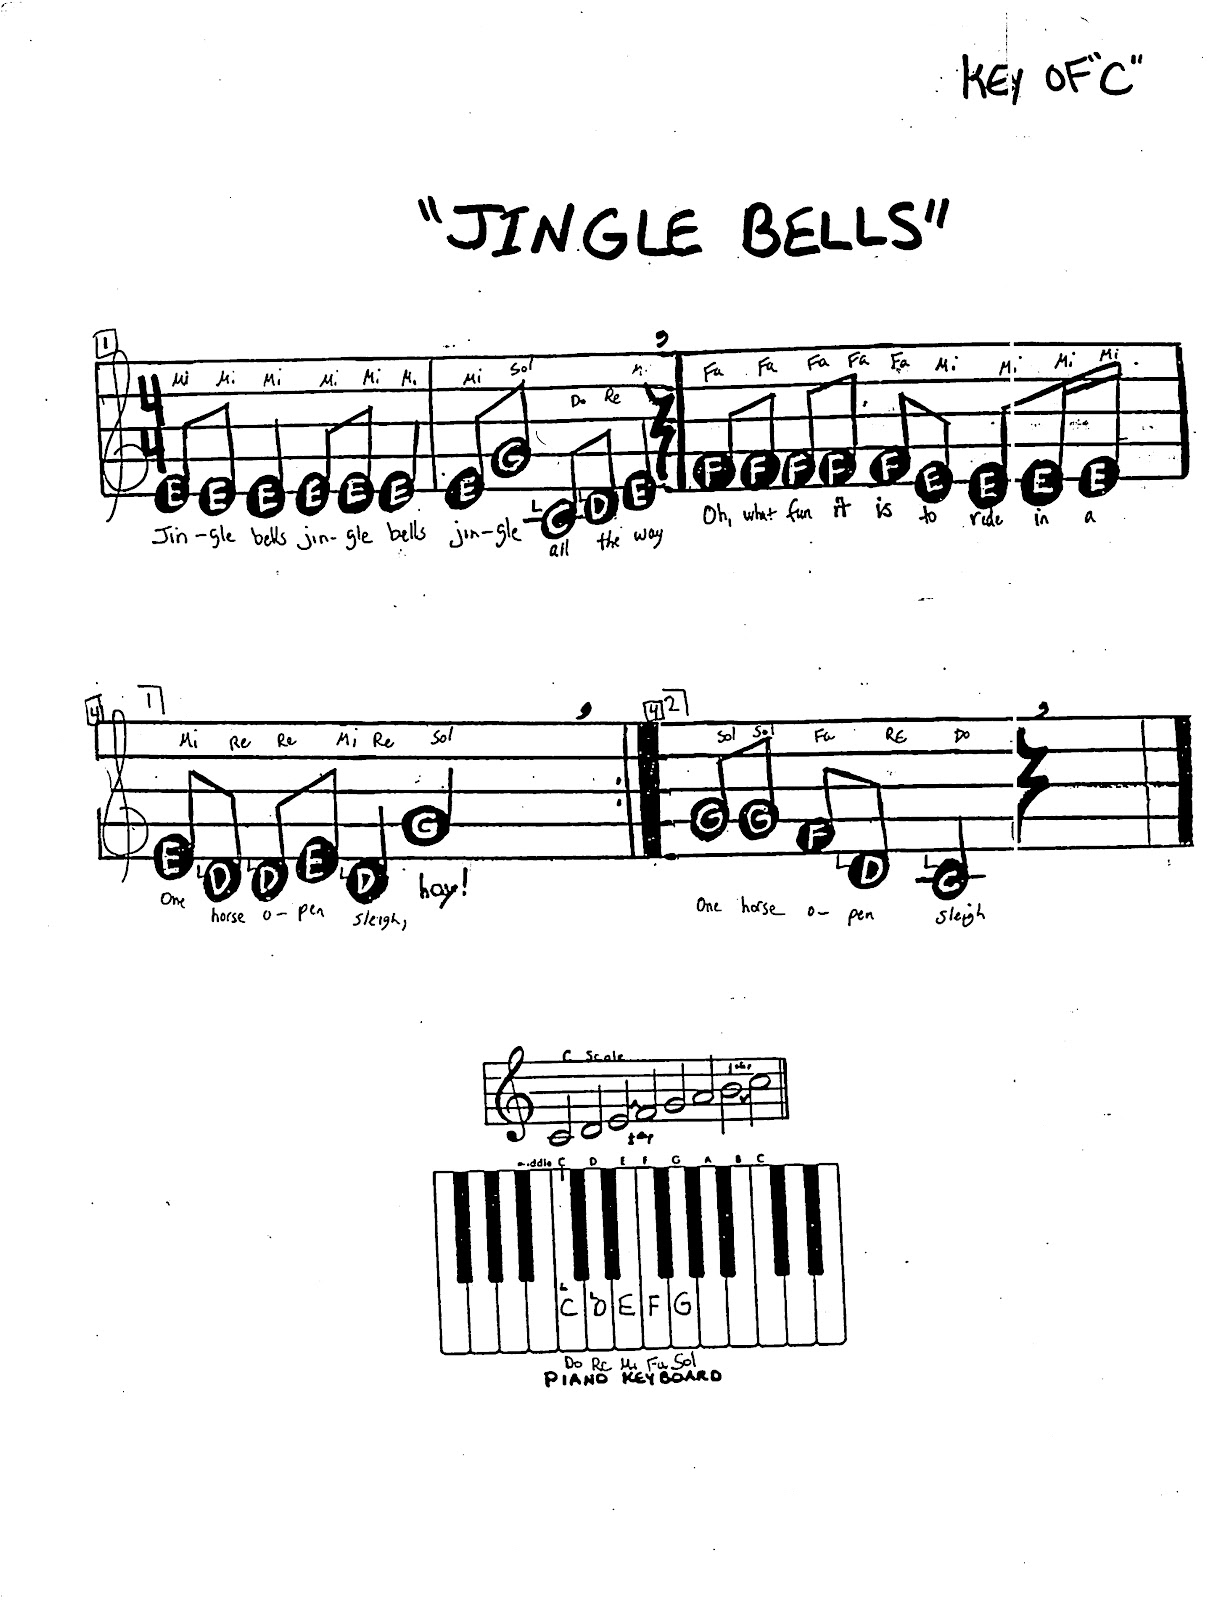 Jingle bells letter notes miss jacobsons music recorder holiday   also sivanewpulse rh